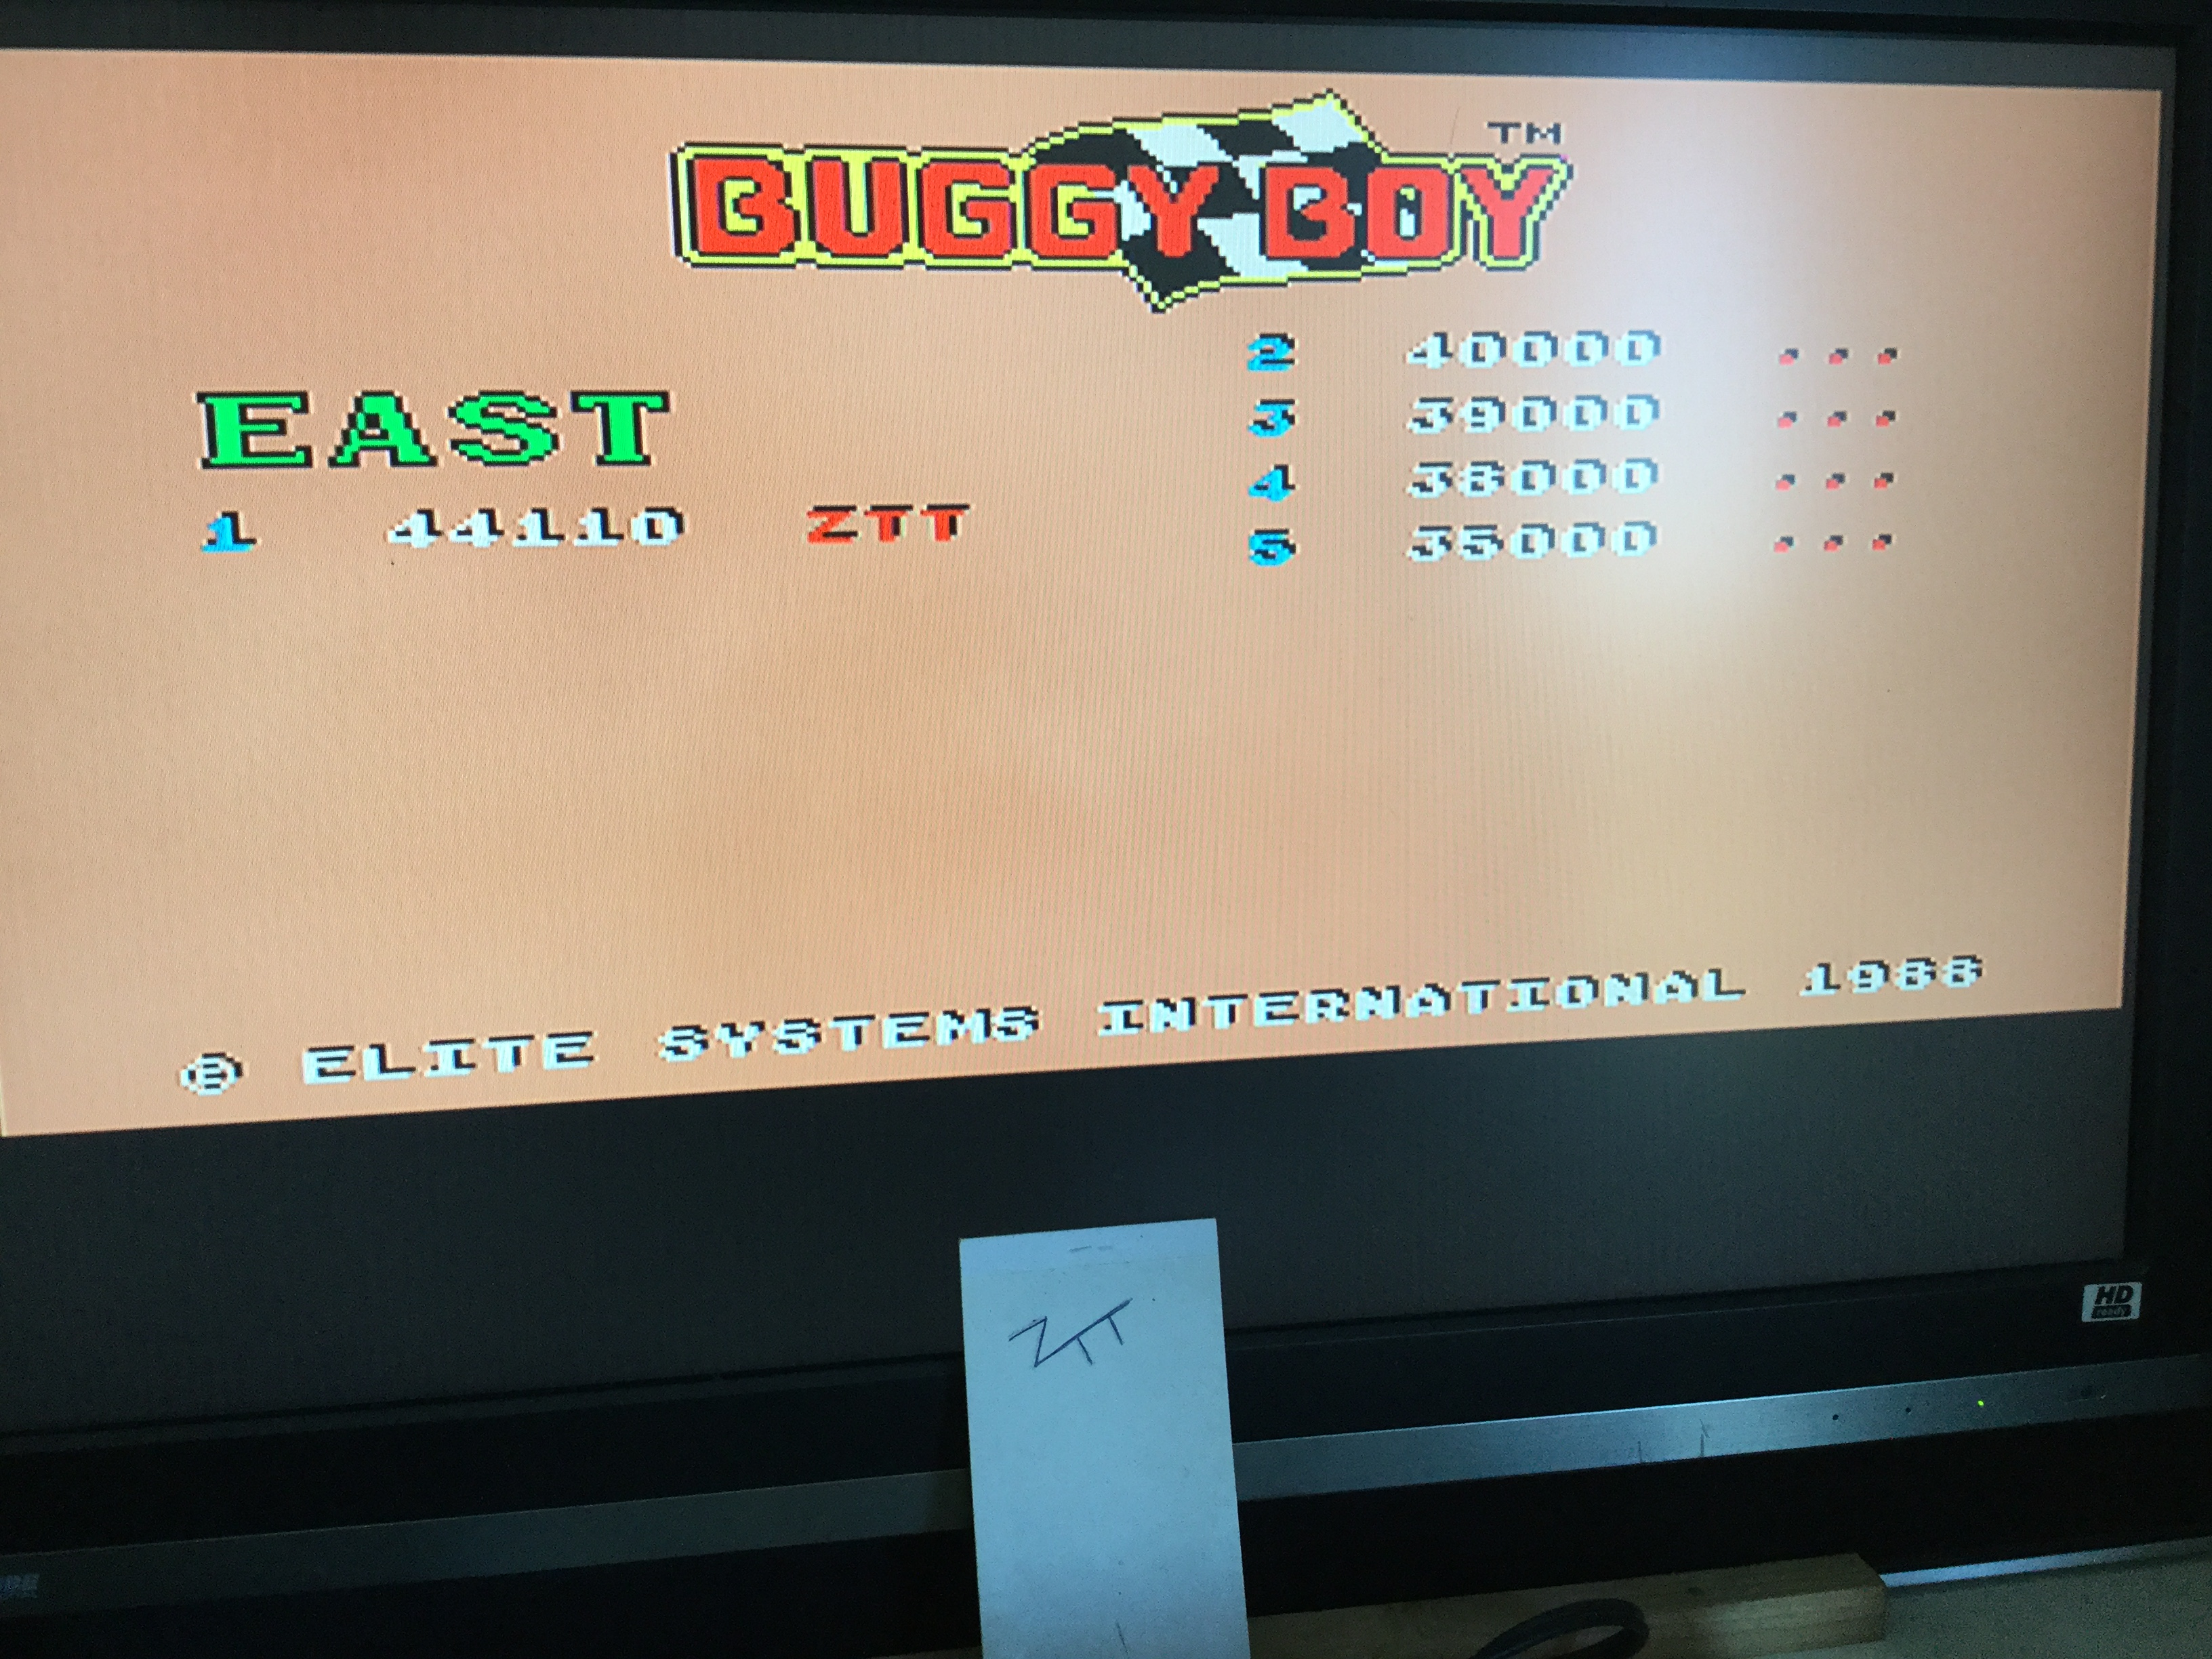 Buggy Boy [East] 44,110 points